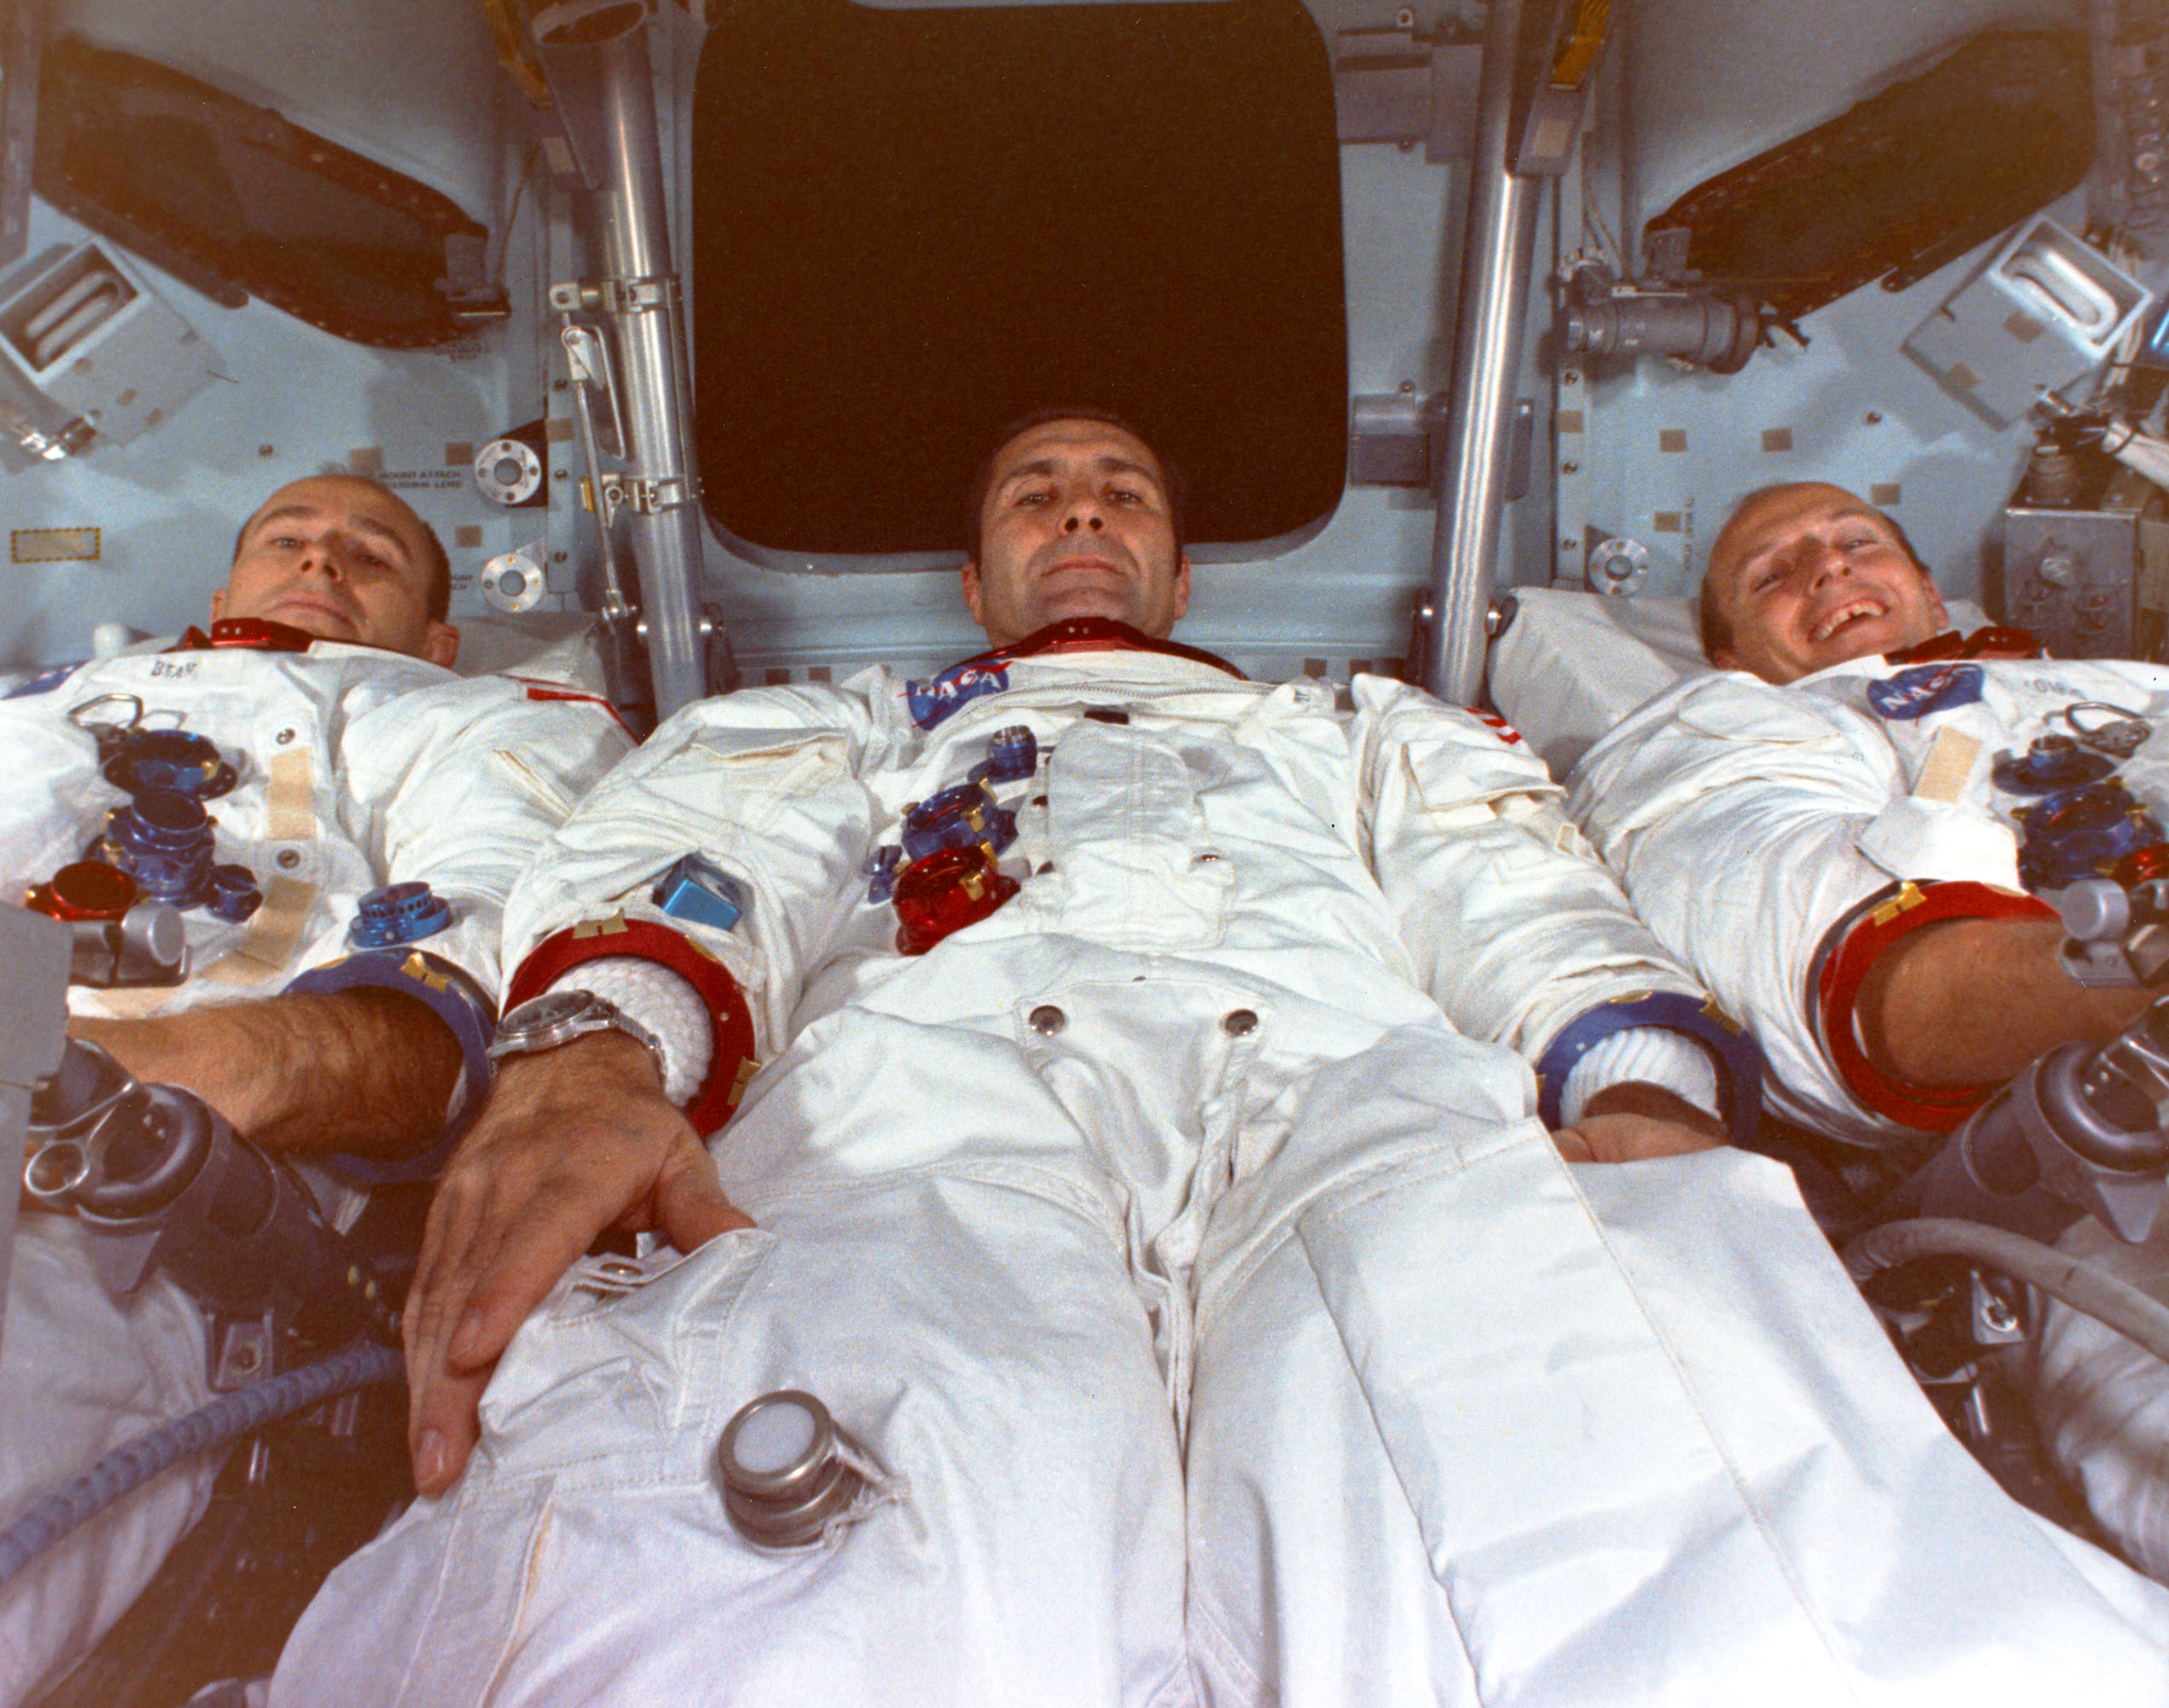 Three men in a space capsule.